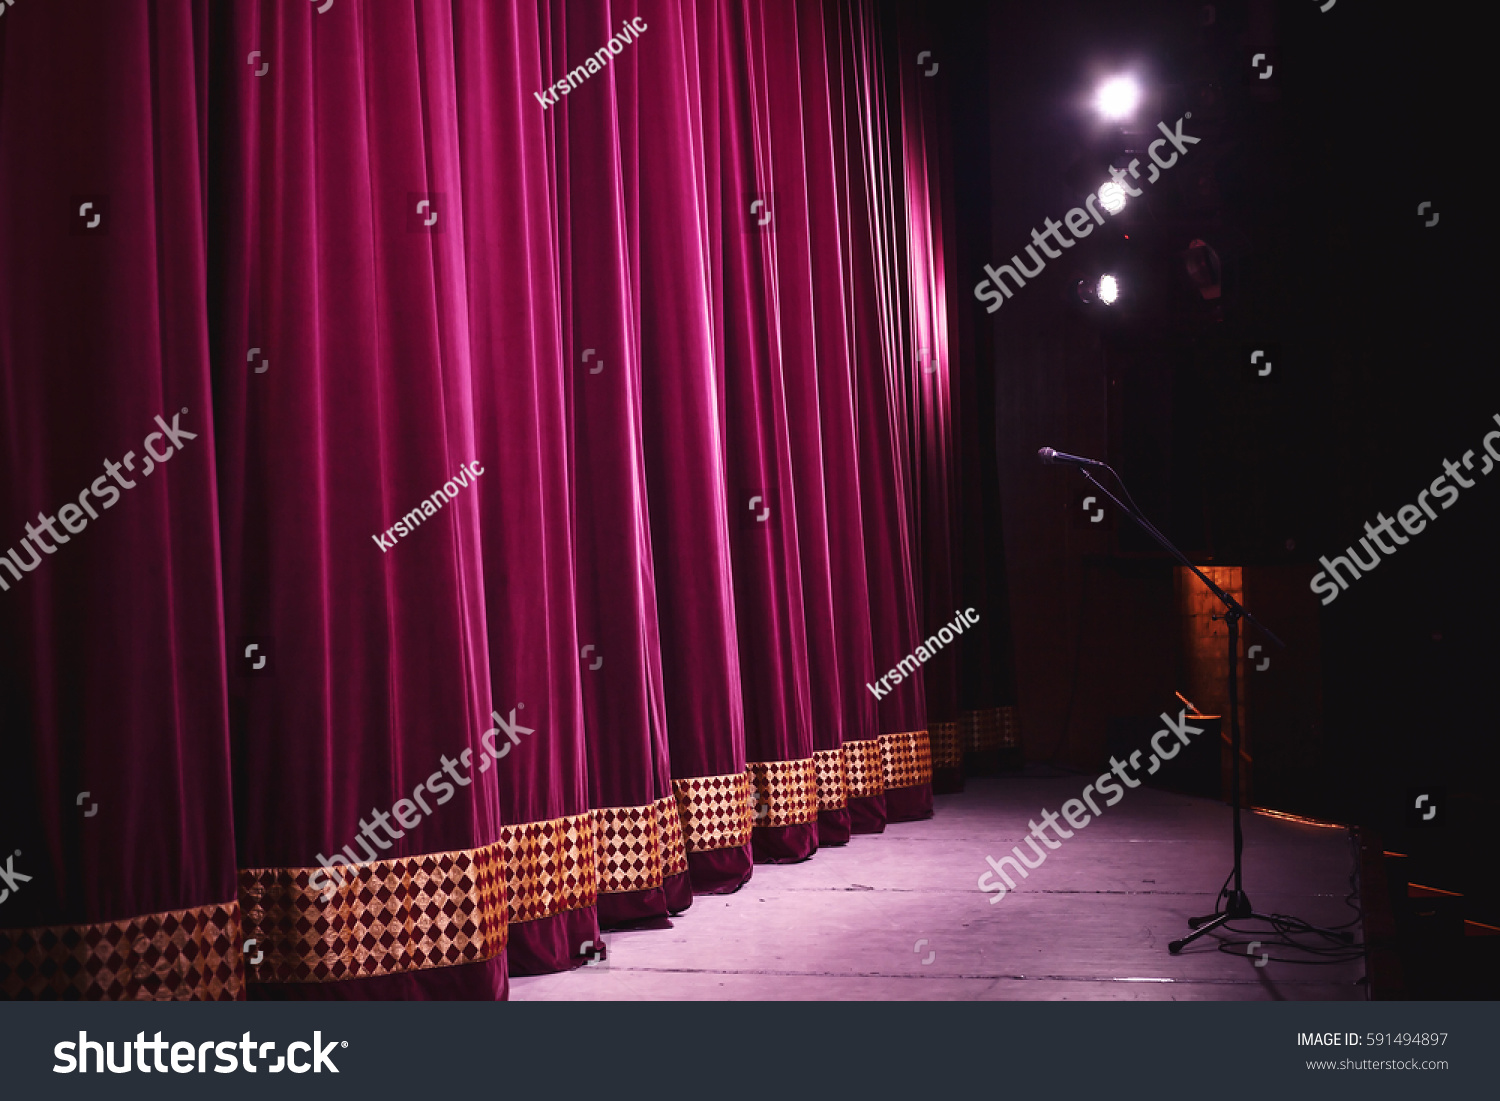 ready performance closed stage big decorative stock photo. Black Bedroom Furniture Sets. Home Design Ideas